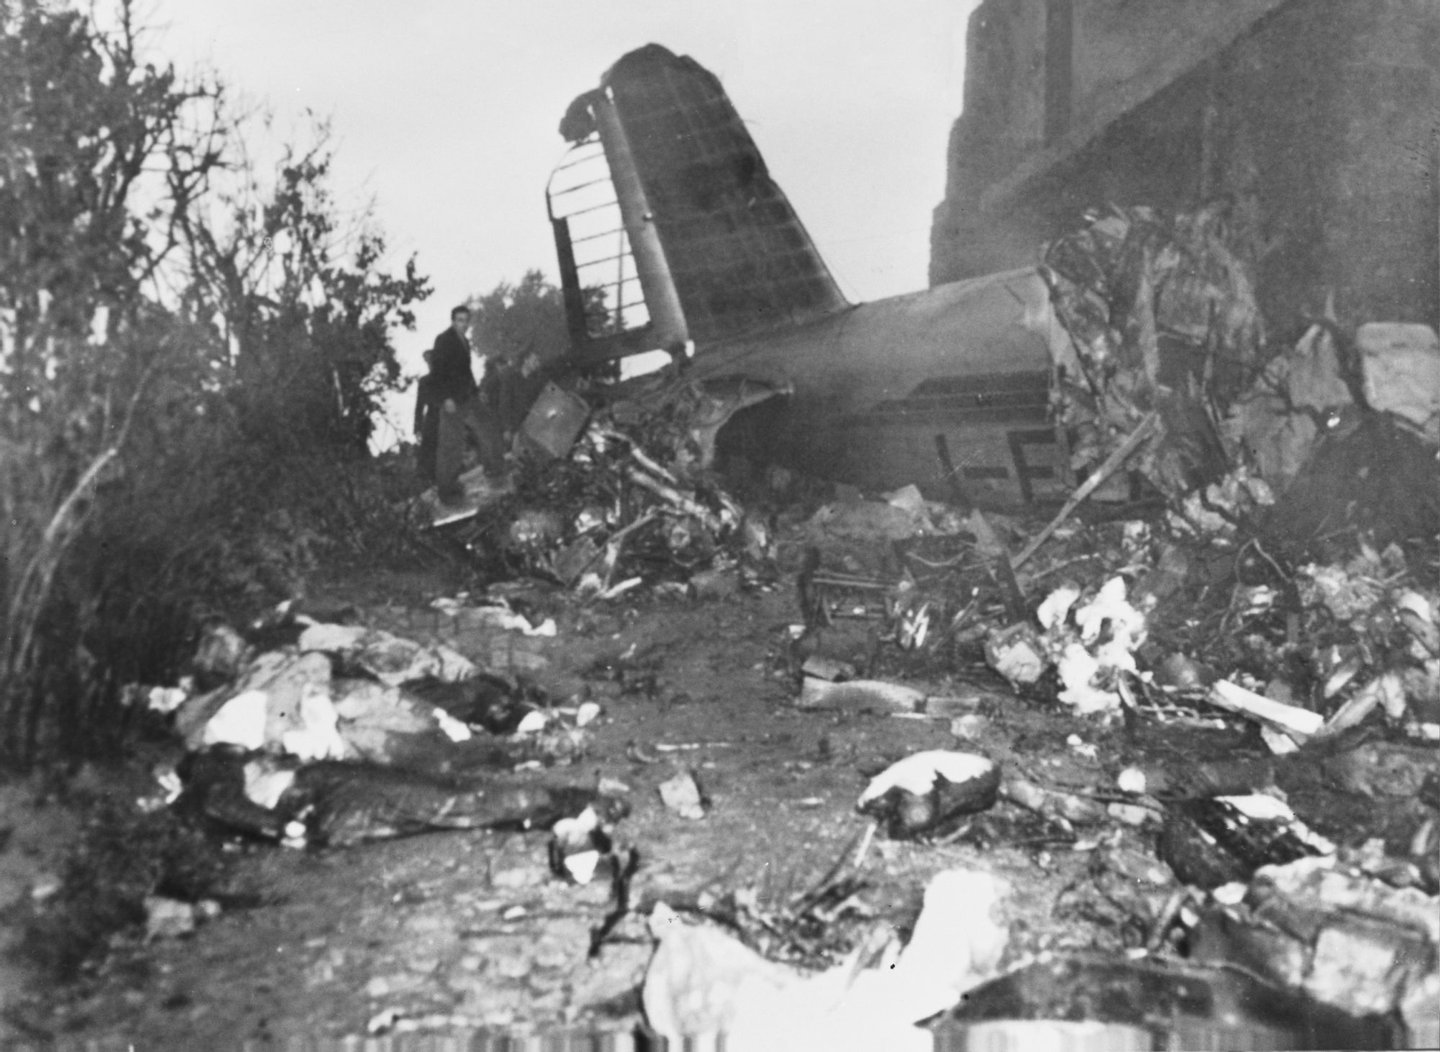 Some of the victims of the air crash in which Italian football team Torino FC were killed, along with their British trainer Leslie Lievesley, 5th May 1949. The plane, which had taken off in Lisbon, was circling to land in Turin when it crashed into Superga hill. The death toll equalled 31, including the entire team, five reserves, two trainers, three journalist, the club's manager Arnaldo Agnisetta, a masseur and the crew of the aircraft. (Photo by Keystone/Hulton Archive/Getty Images)